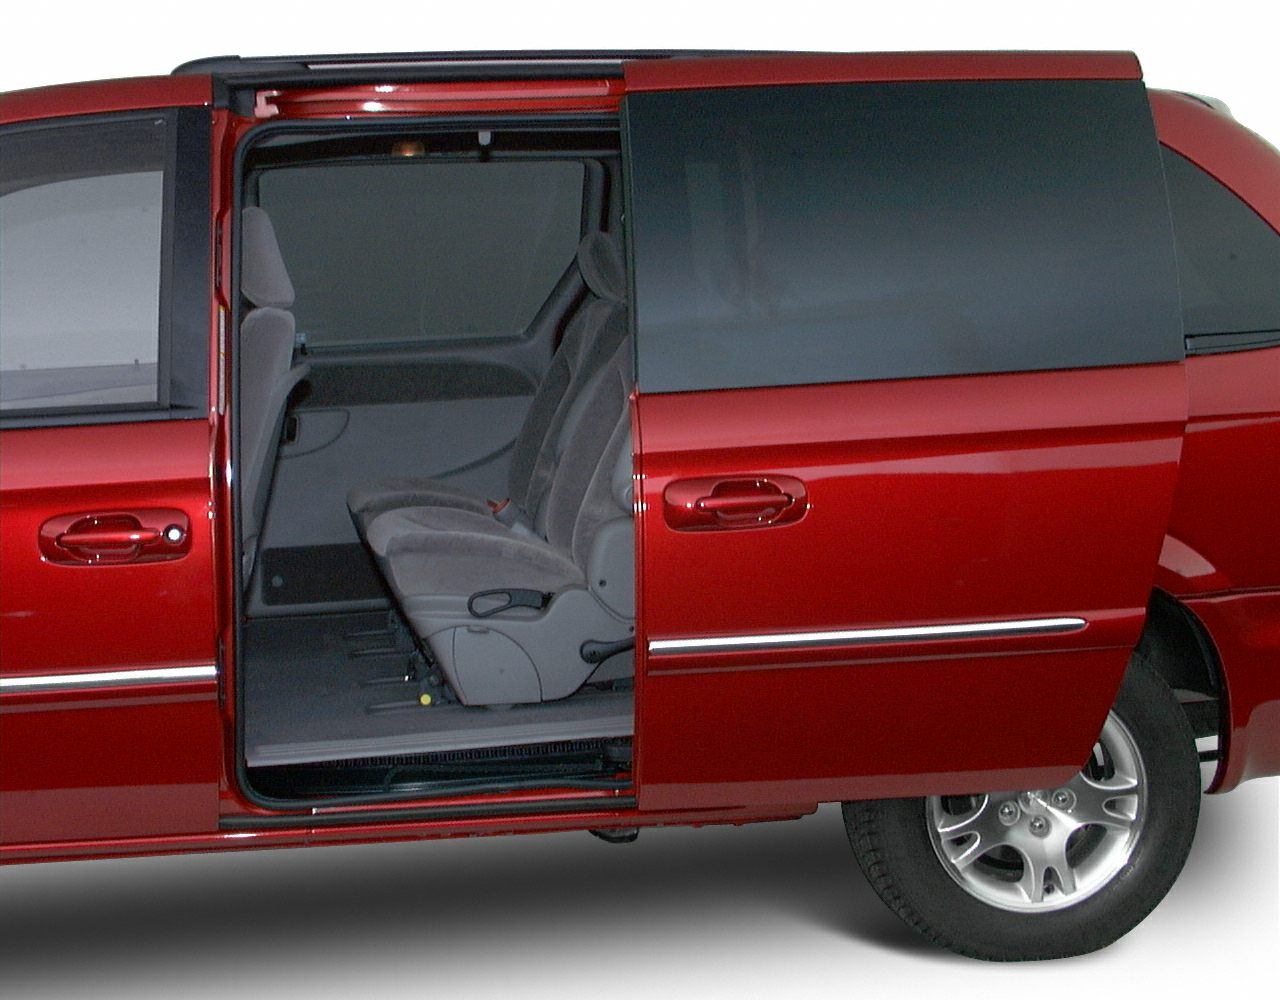 Img Cab Ddv B on 2005 Dodge Grand Caravan Value